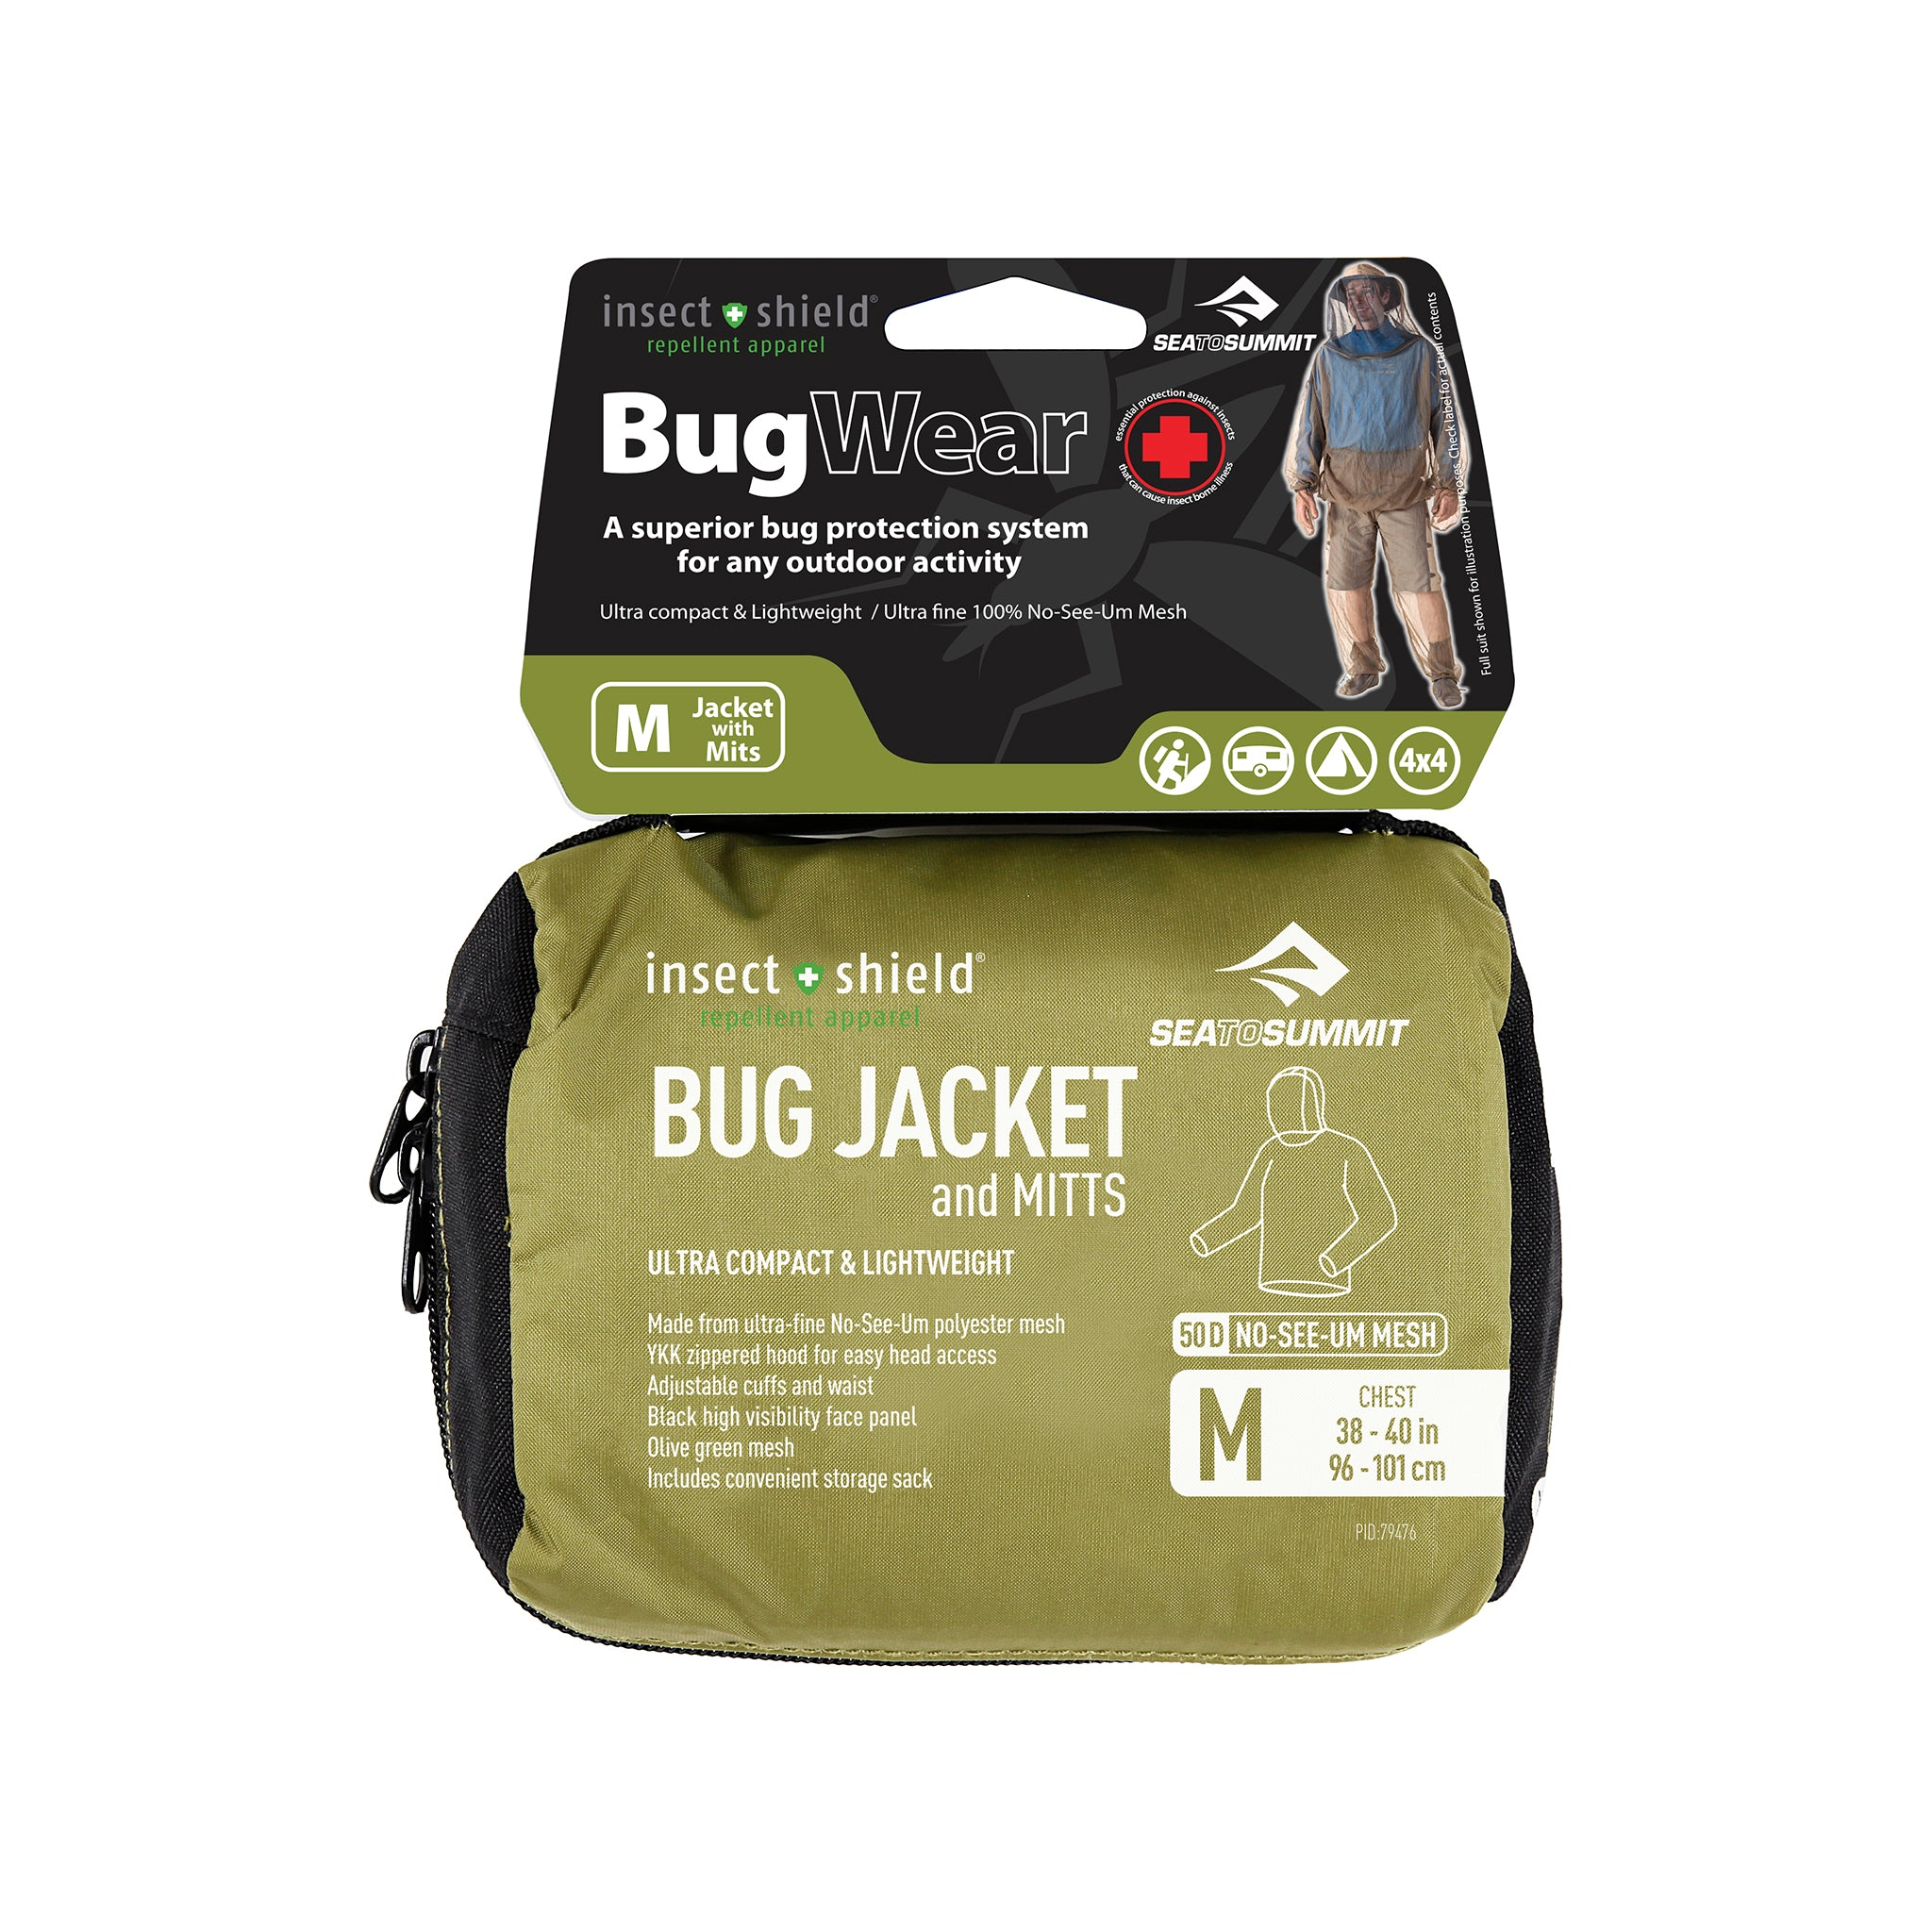 Bug Jacket _ mosquito protection clothing _ insect shield _ medium